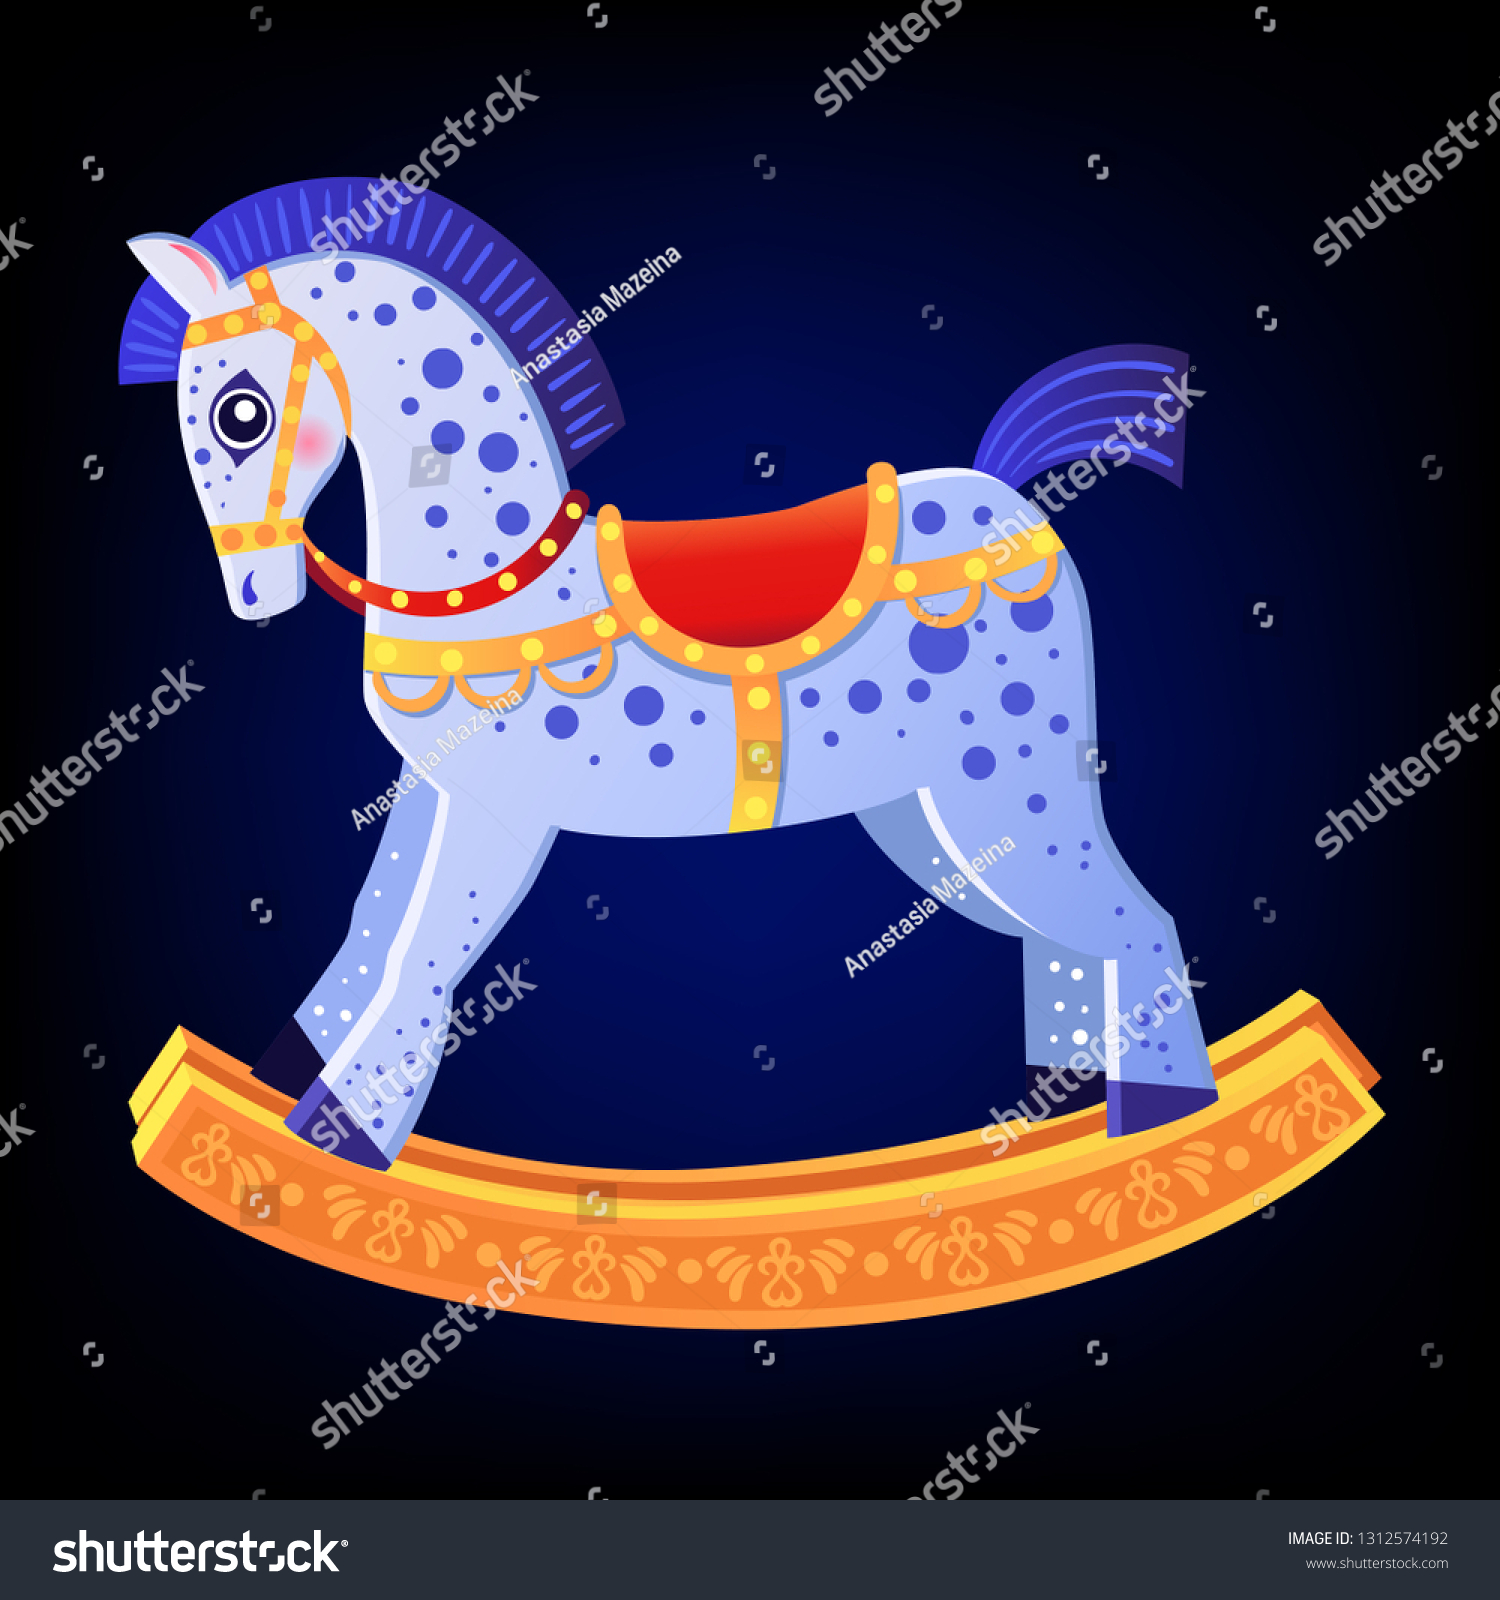 Cute Cartoon Rocking Horse Christmas Cartoon Stock Vector Royalty Free 1312574192